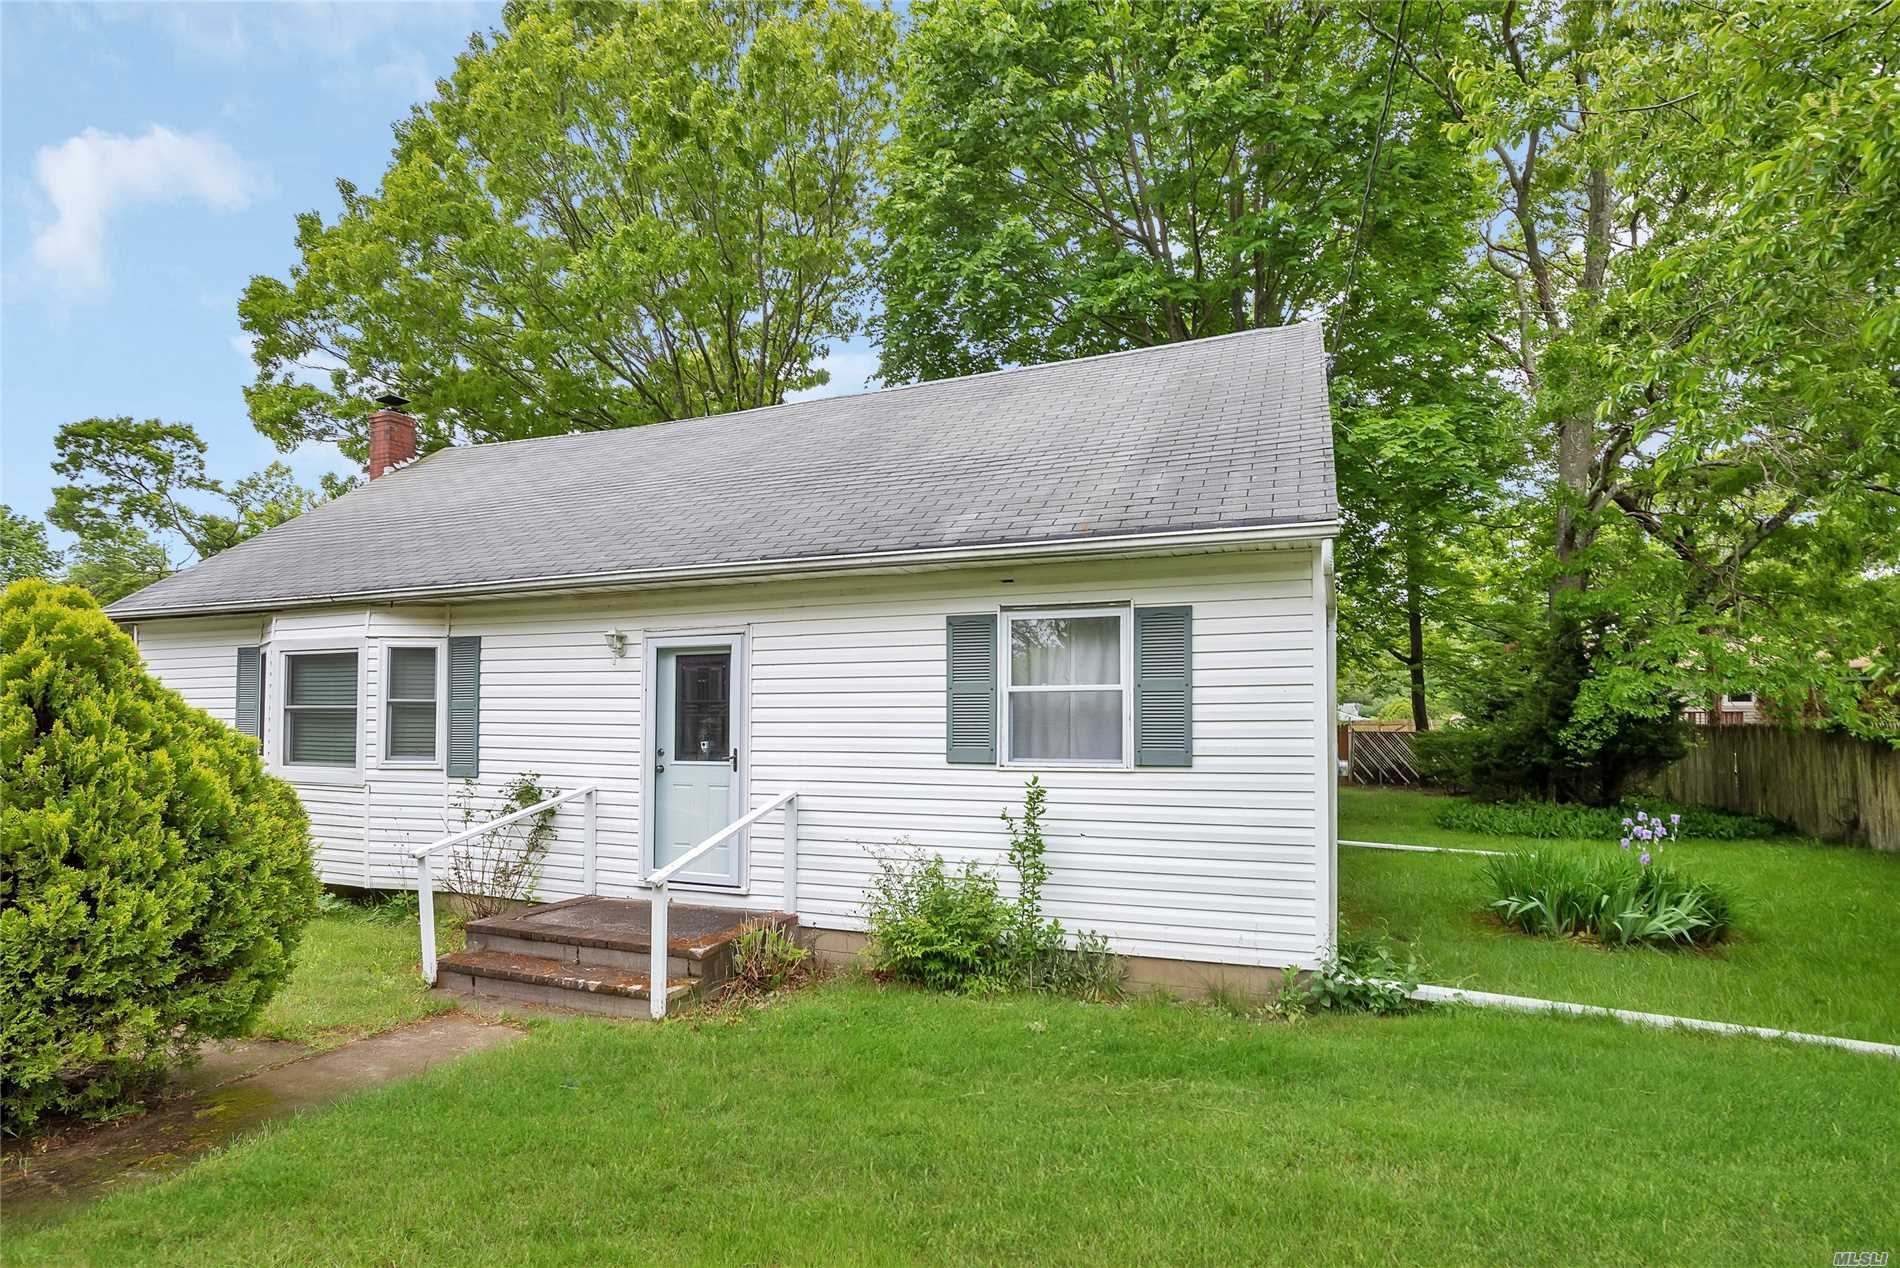 122 Longfellow Dr - Mastic Beach, New York